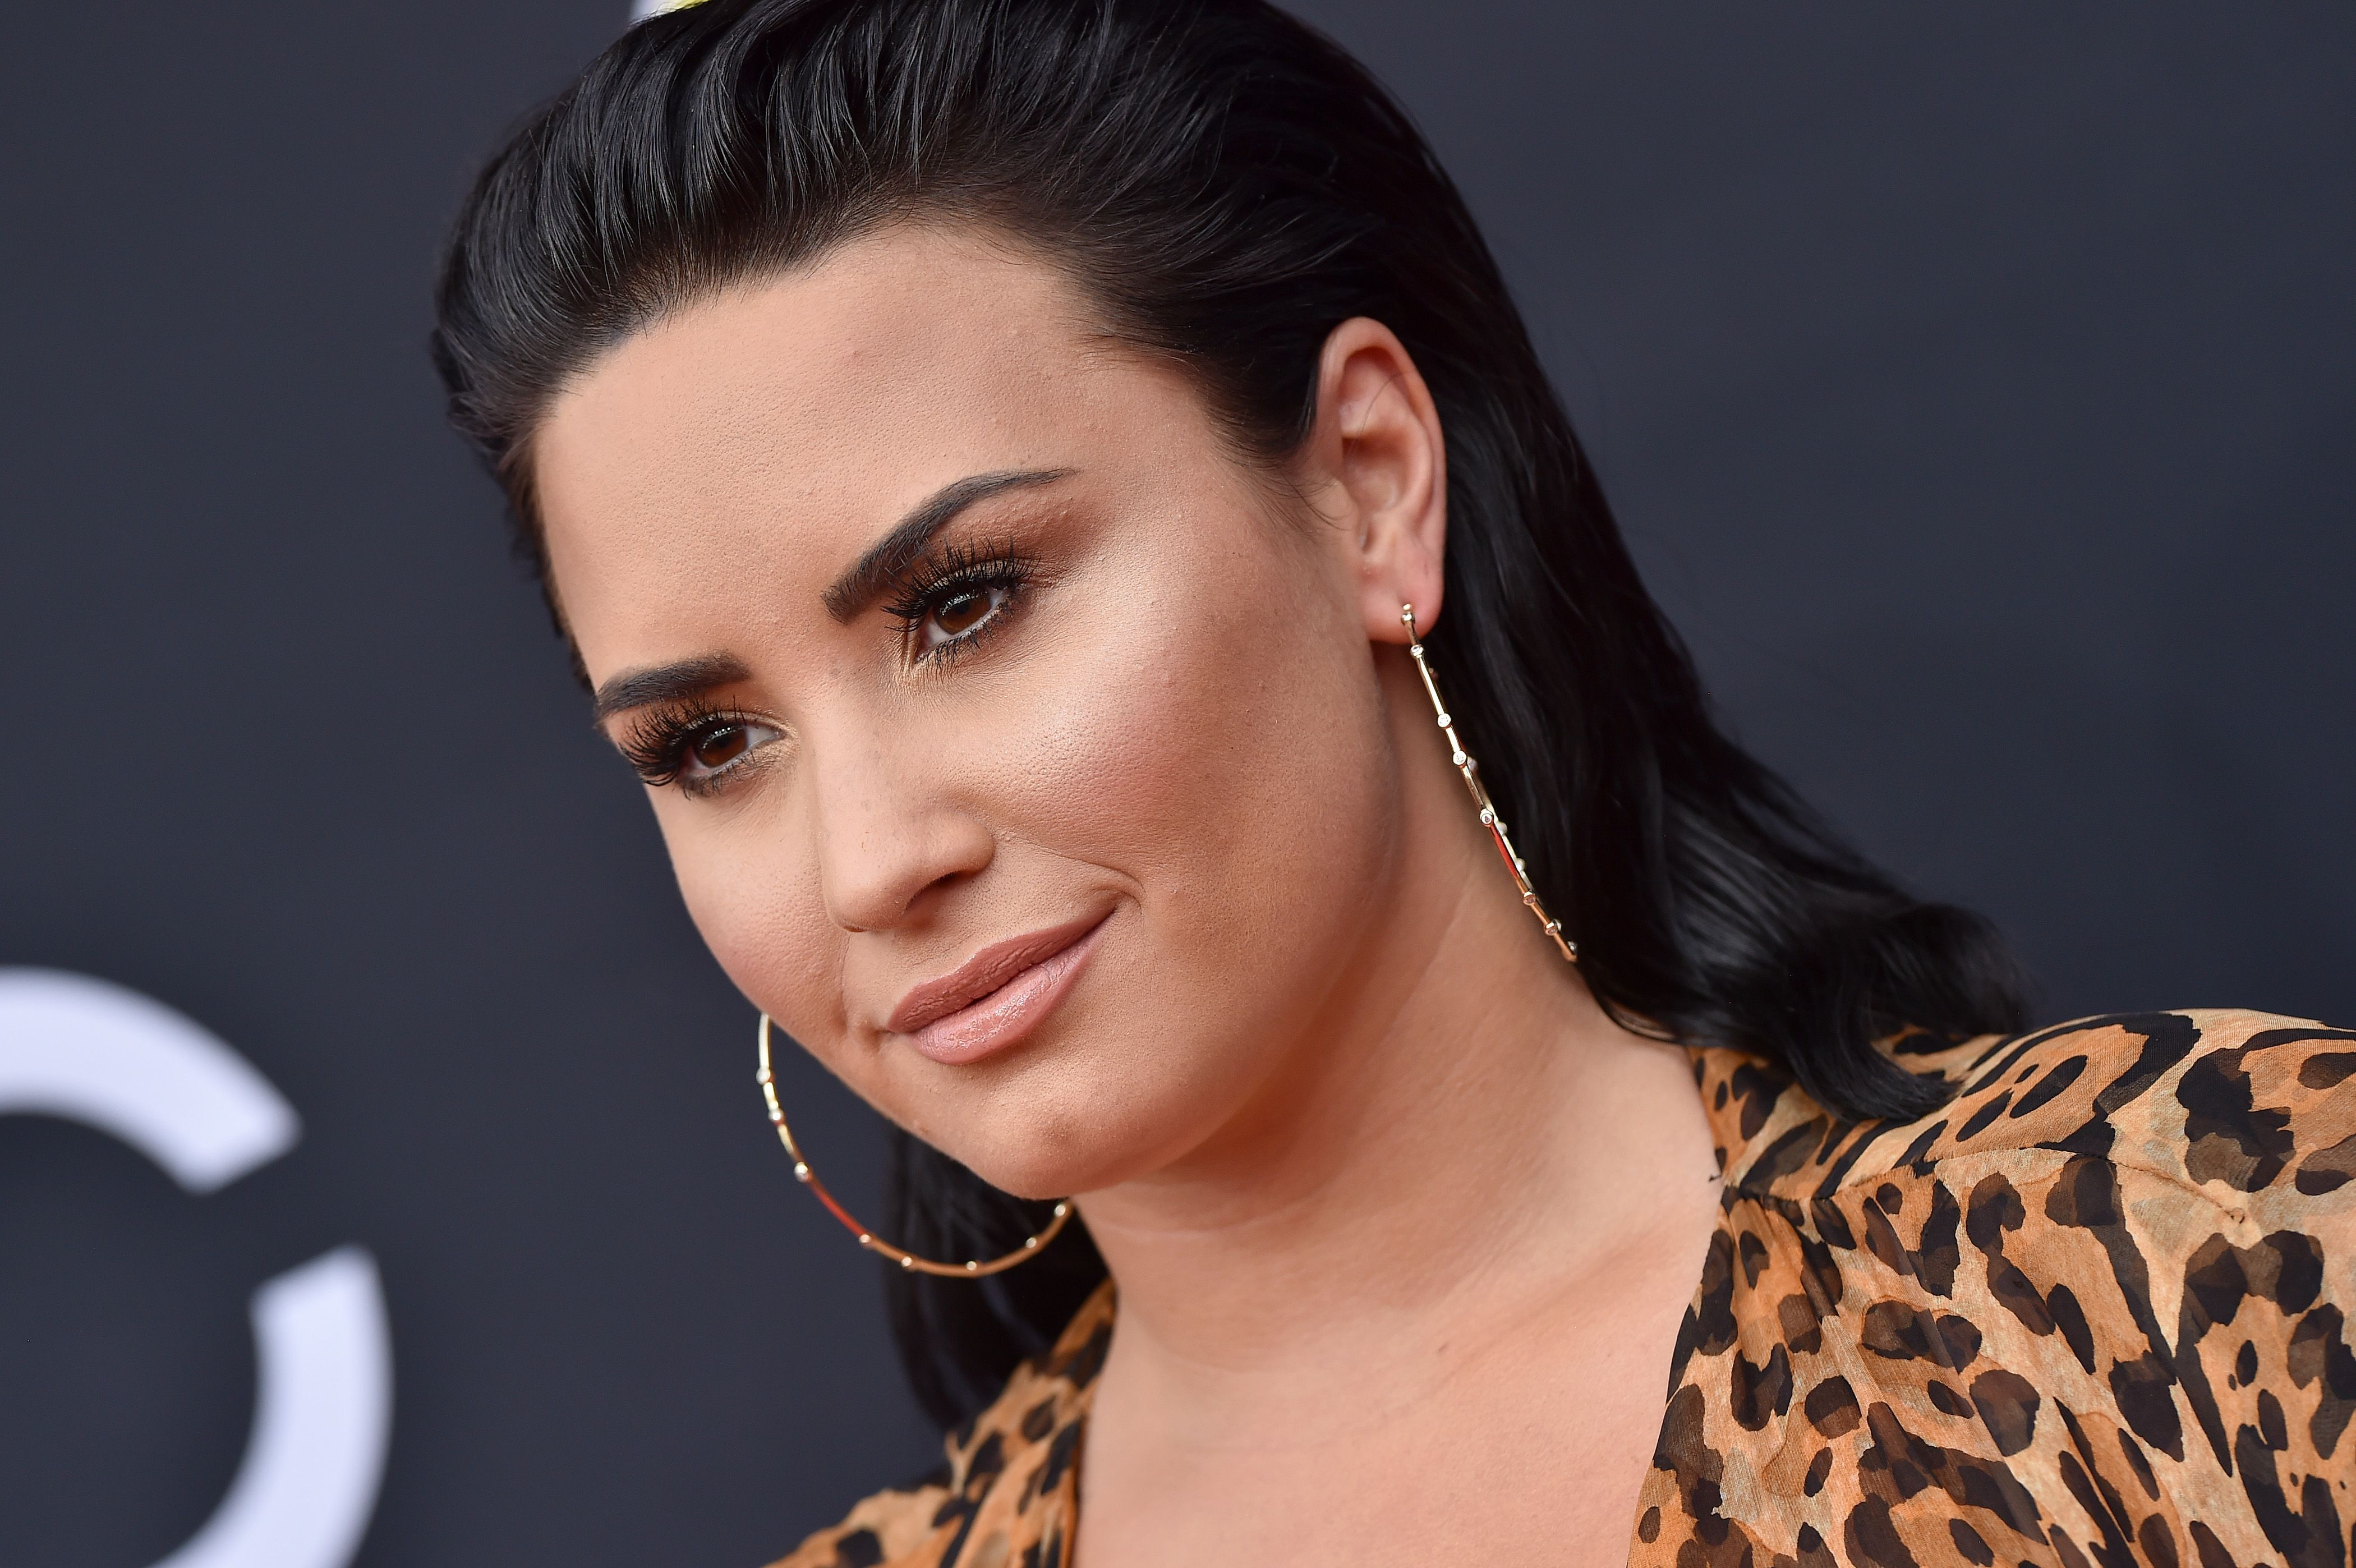 Demi Lovato Just Got The The Most Touching Tattoo Of Her Great-Grandmother